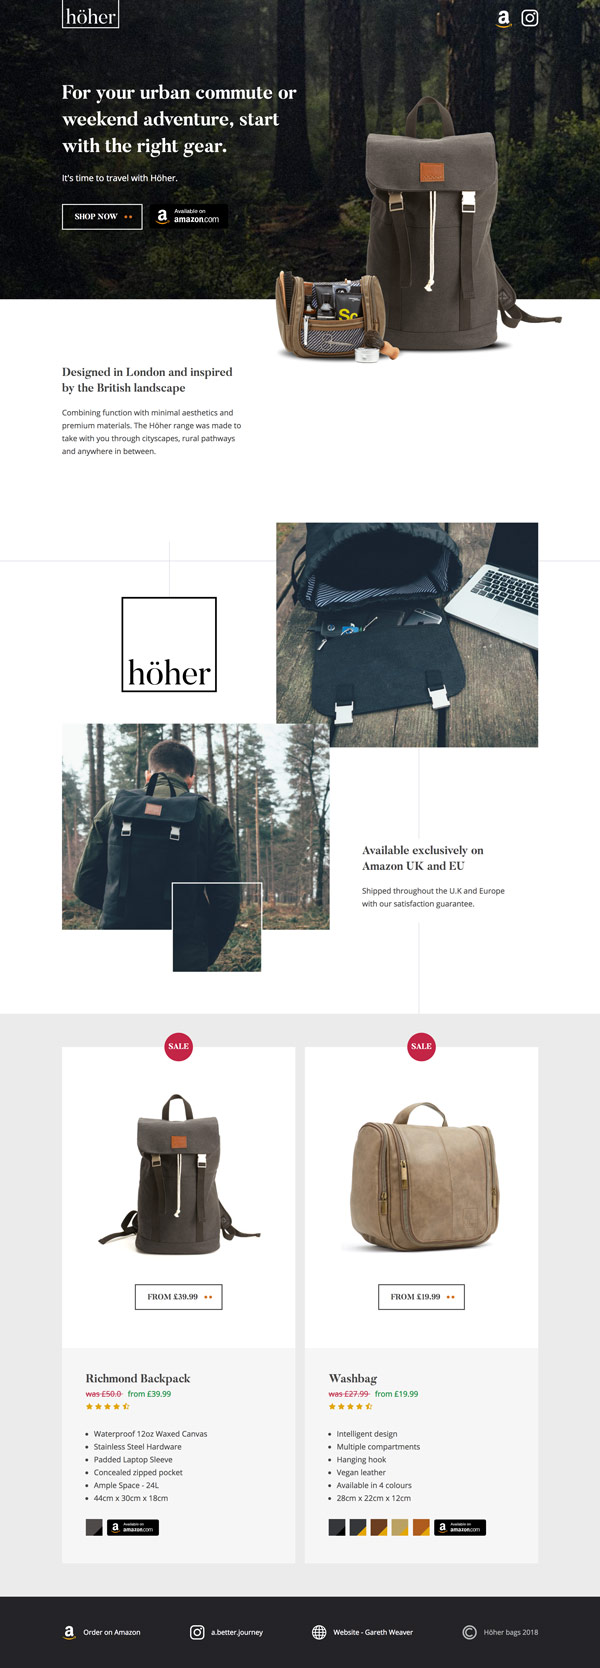 Höher Backpacks 1